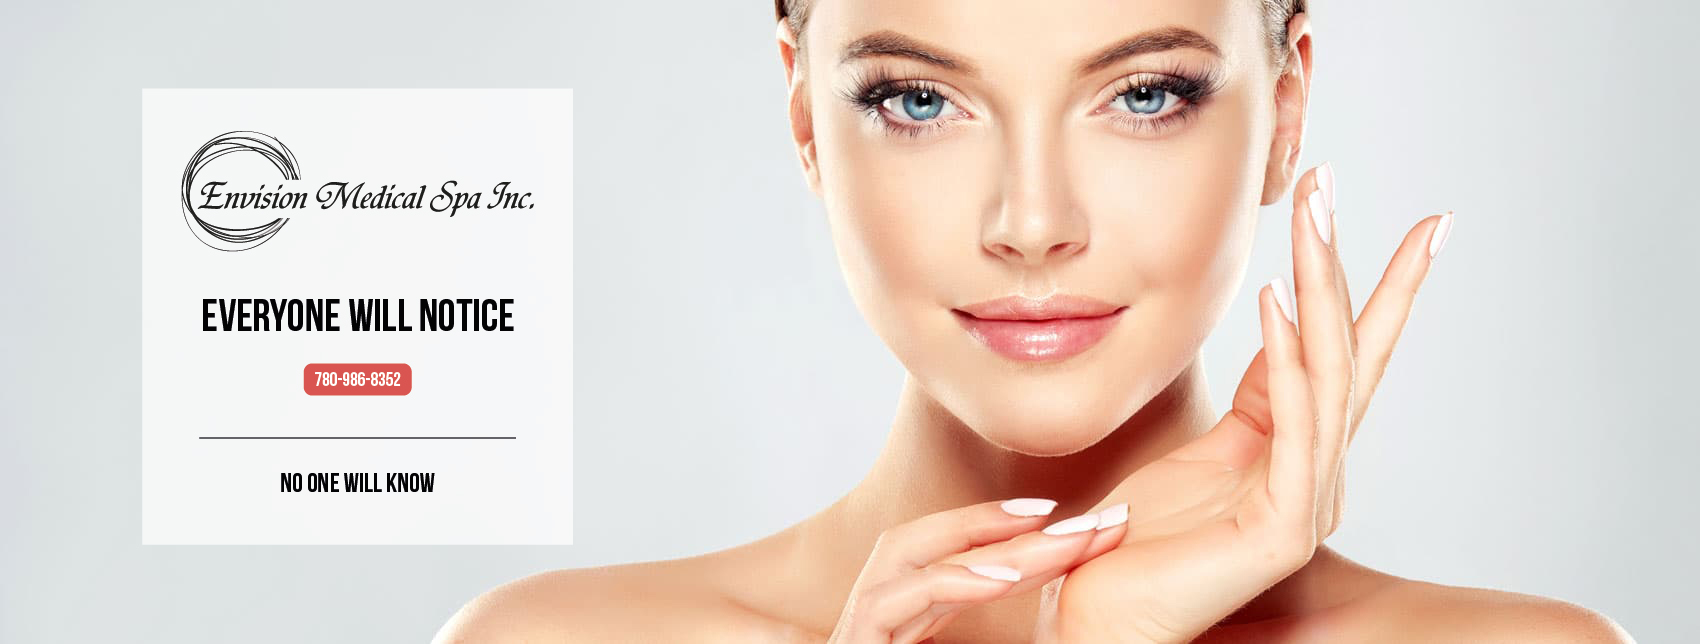 A blemish-free face like this can be a reality with safe, effective therapies from Envision Medical Spa.